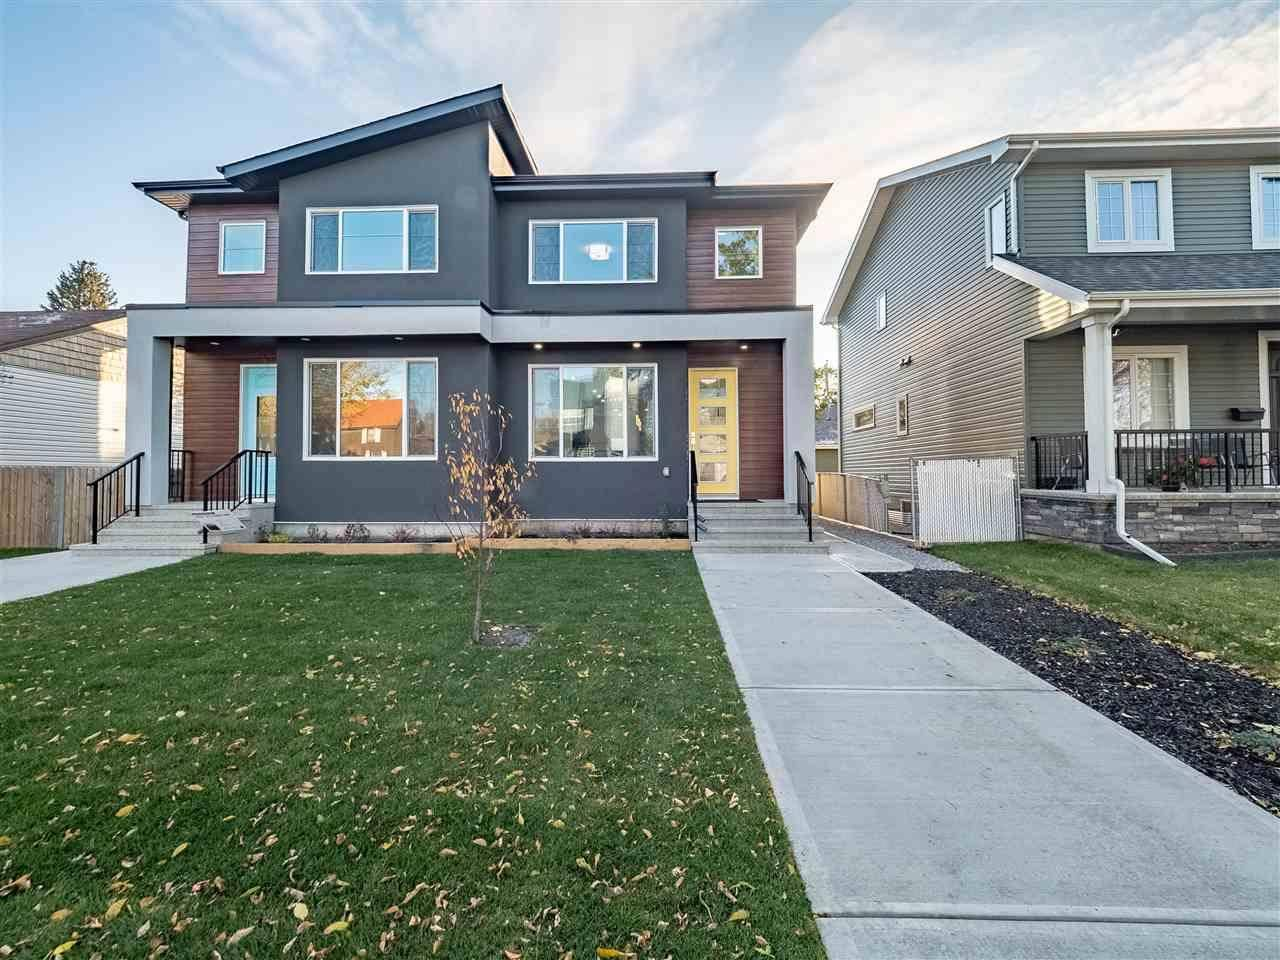 Townhouse for sale at 8829 92 St Nw Edmonton Alberta - MLS: E4177413